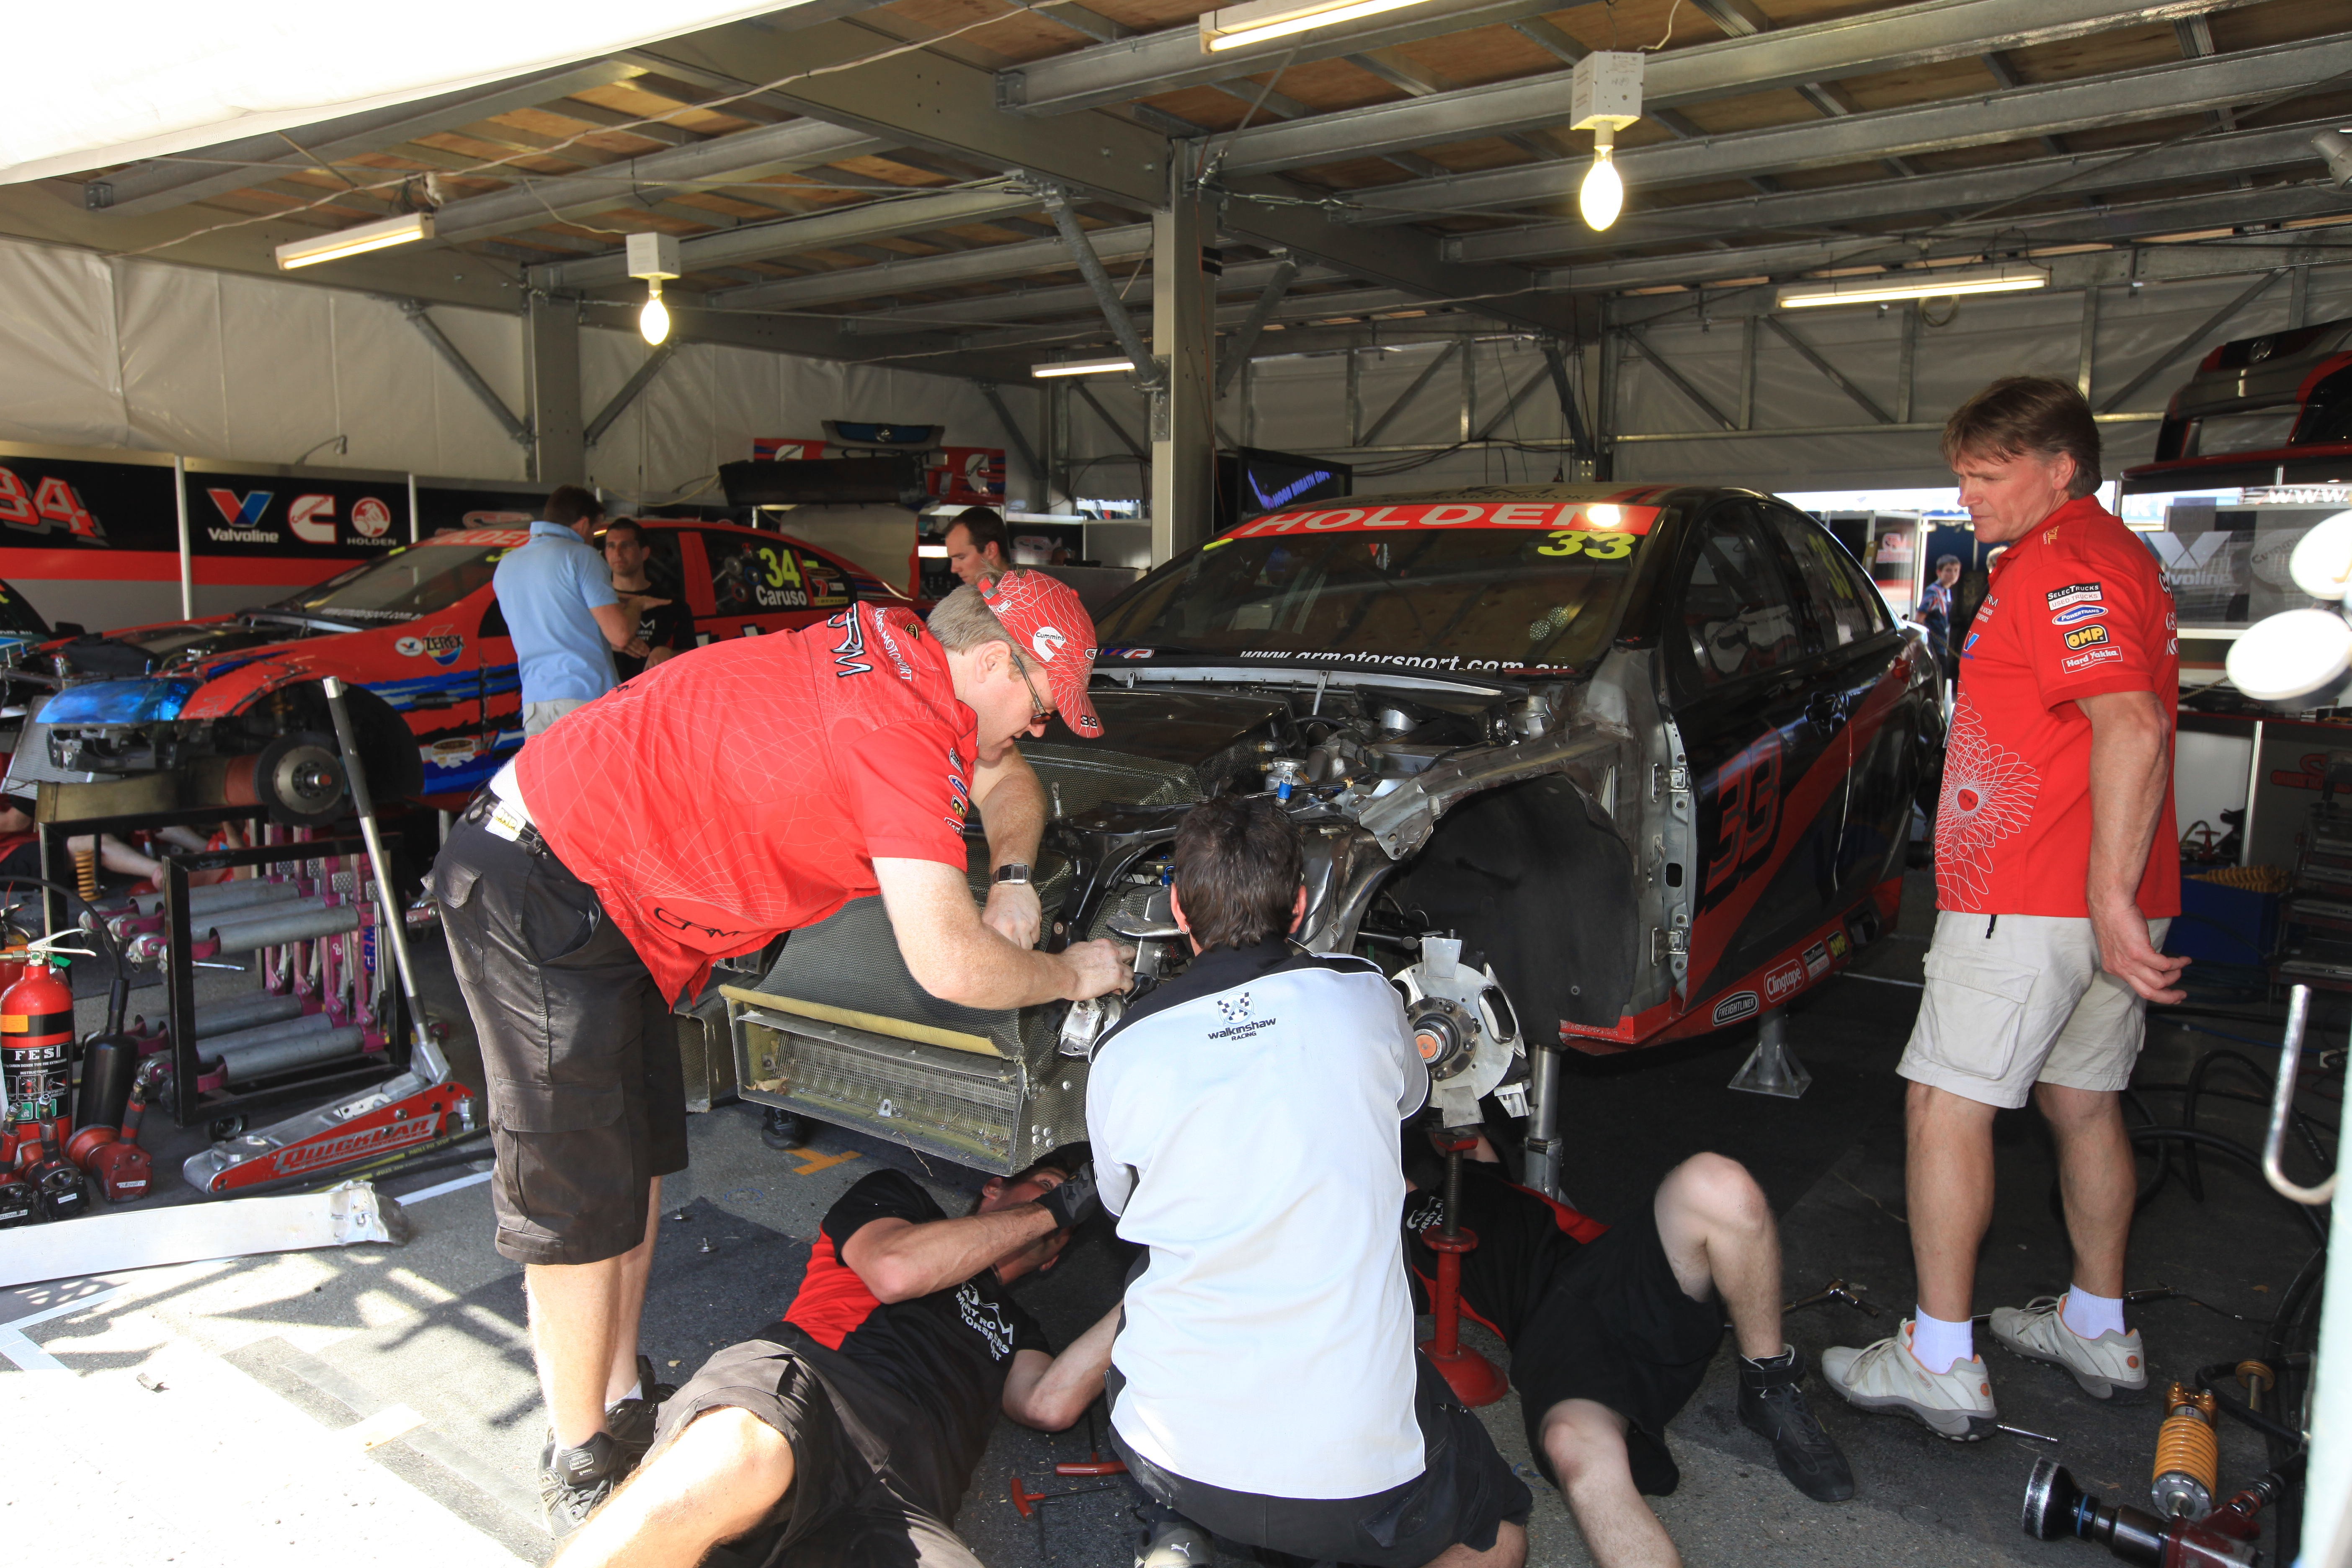 GRM in a race to fix its Commodores